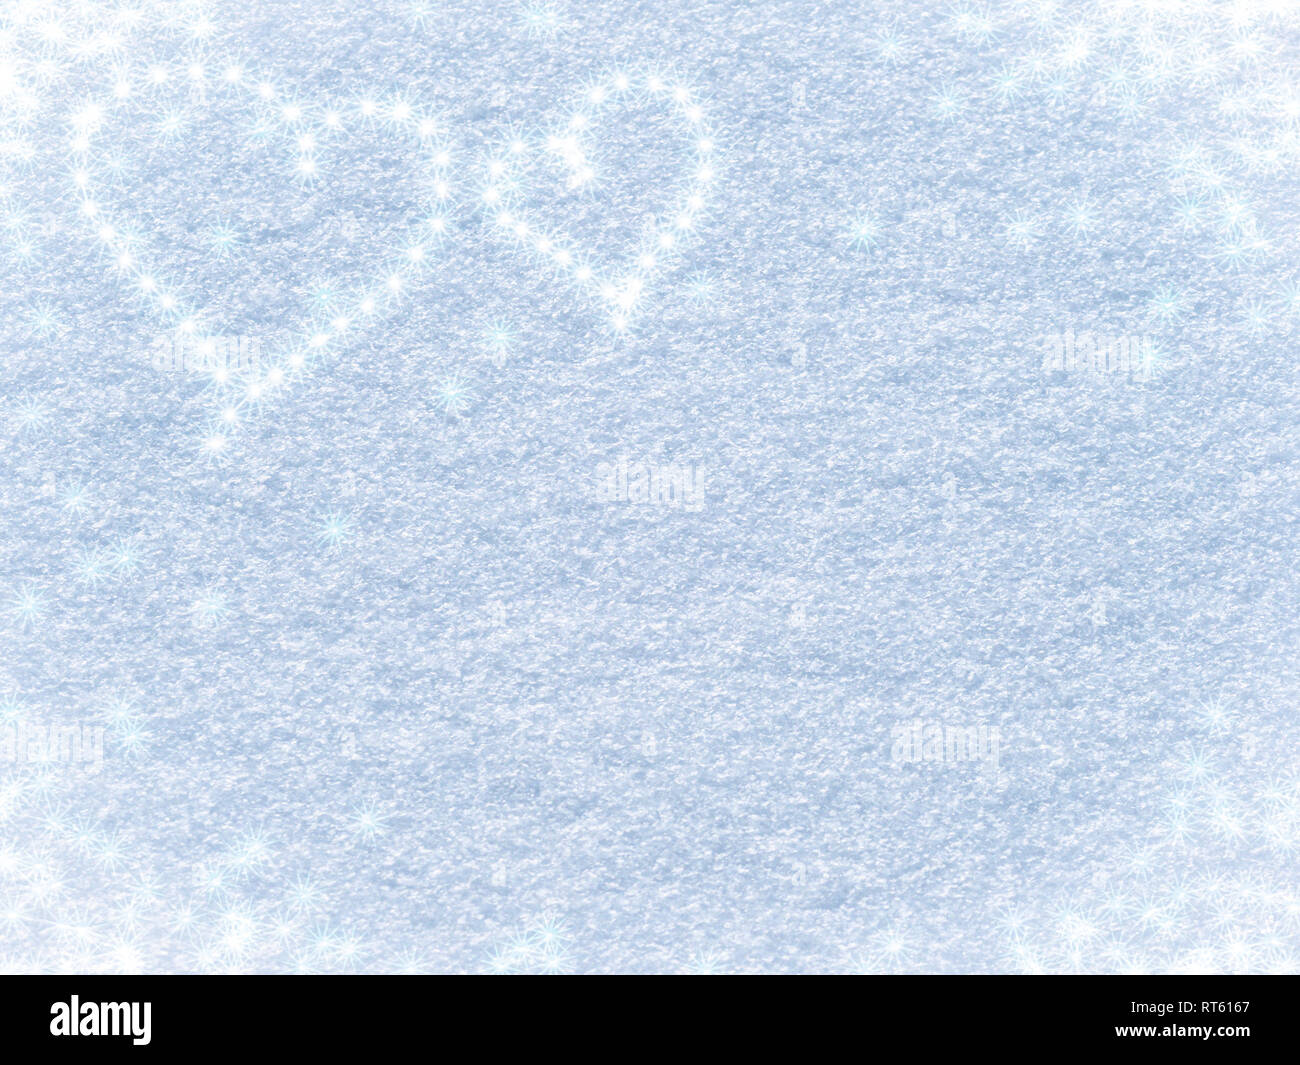 Snowy background with hearts and asterisks for Valentine's day - Stock Image